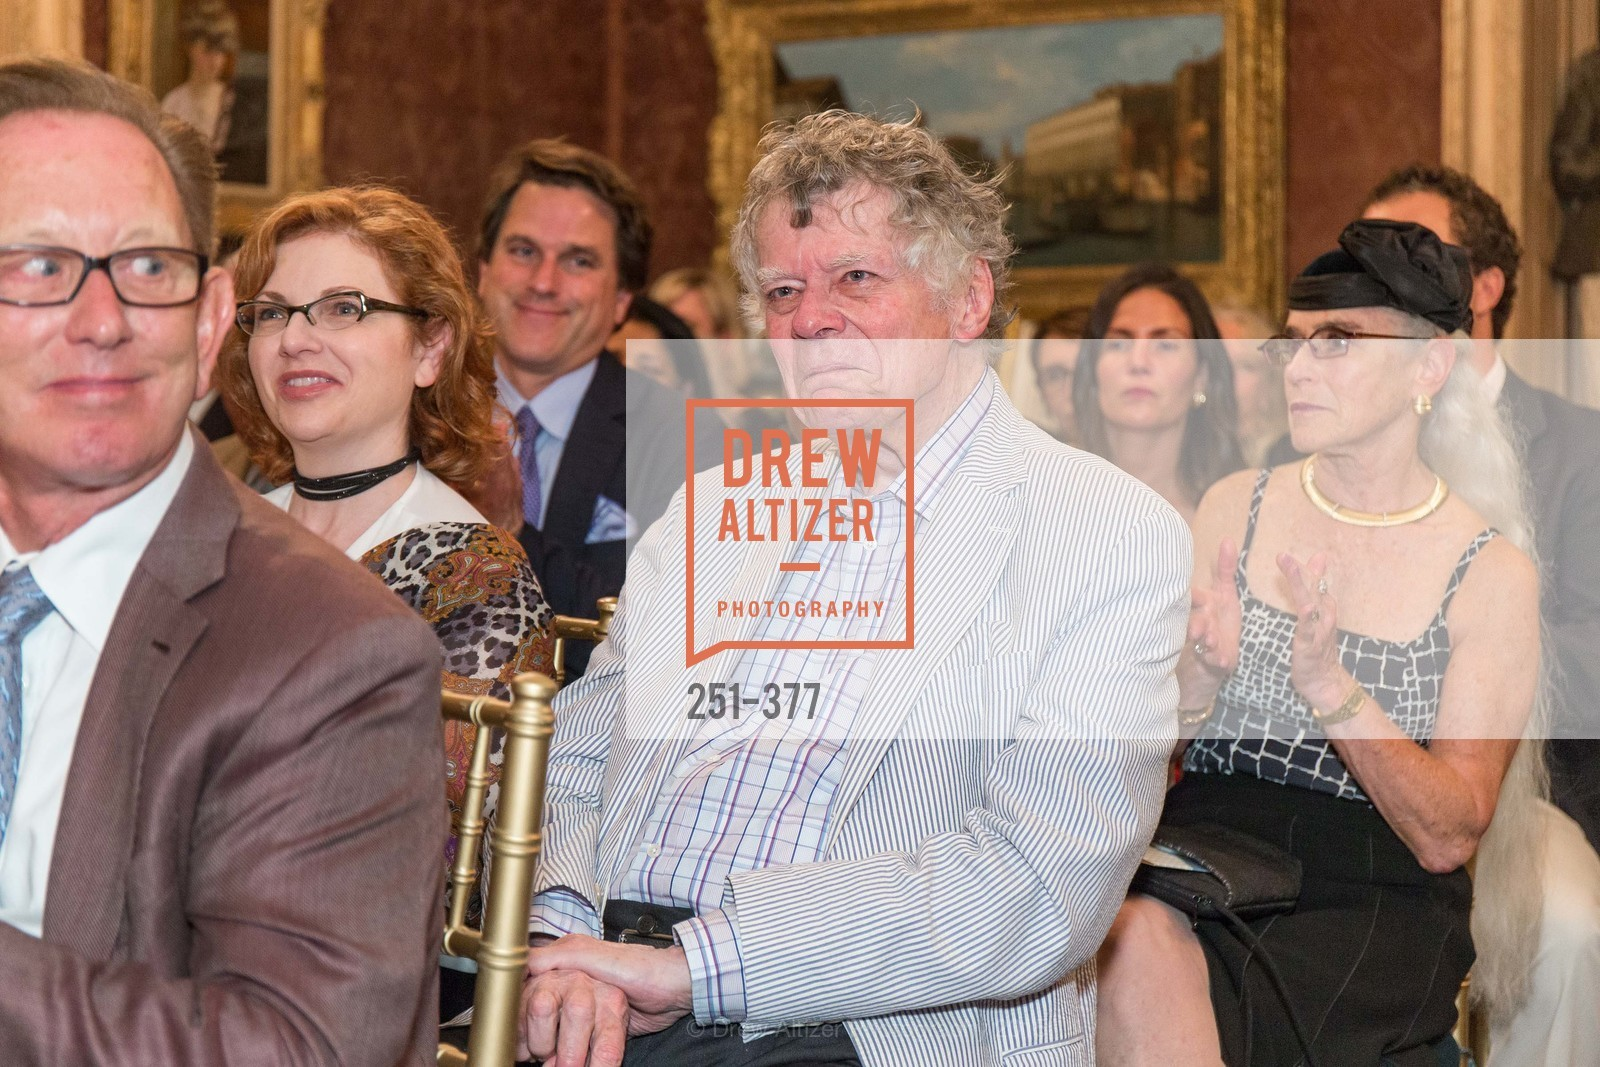 Gordon Getty, Ann and Gordon Getty Host SF Conservatory of Music with Marilyn Horne, Private Residence, October 15th, 2015,Drew Altizer, Drew Altizer Photography, full-service agency, private events, San Francisco photographer, photographer california